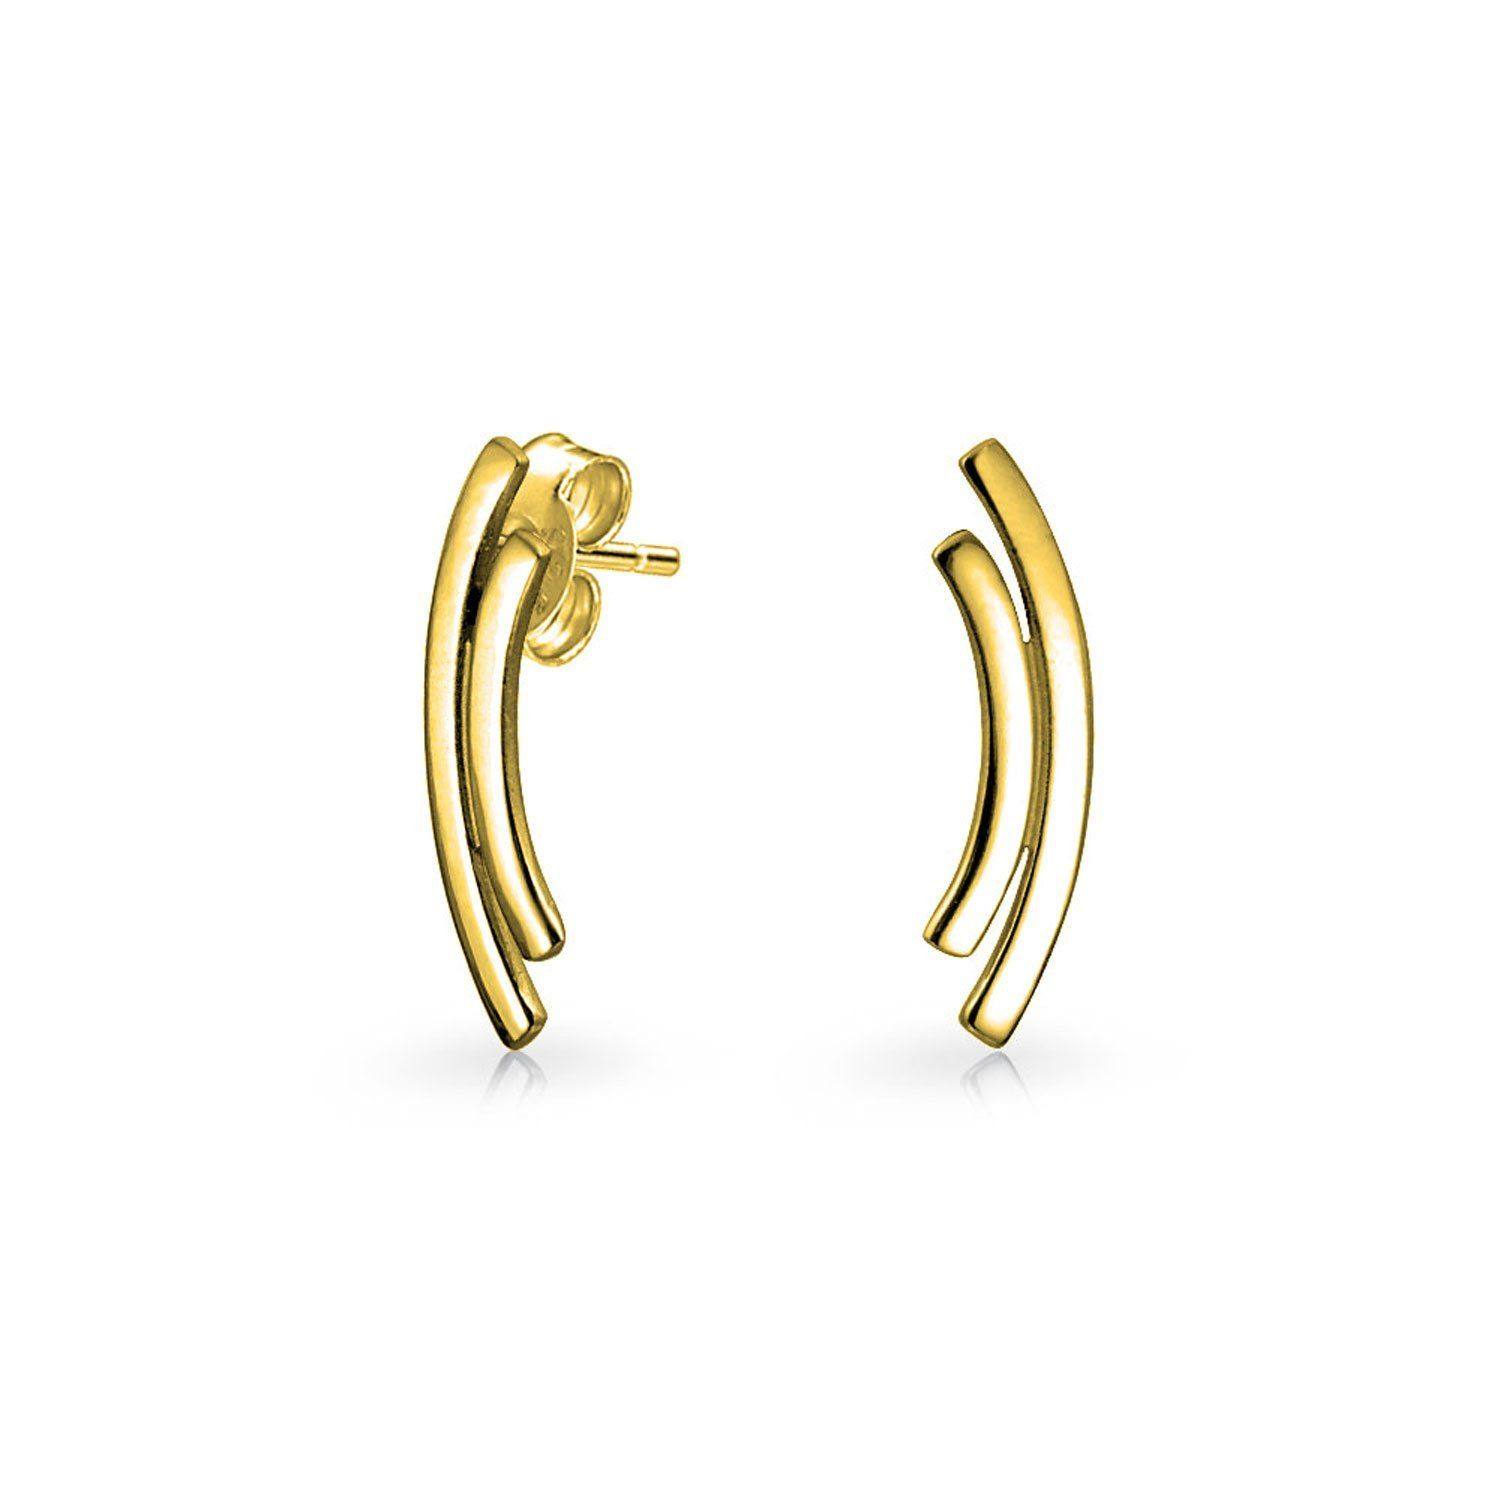 747c7b897a5b7 Gold Plated 925 Silver Double Curved Bar Stud Earrings -- You can ...